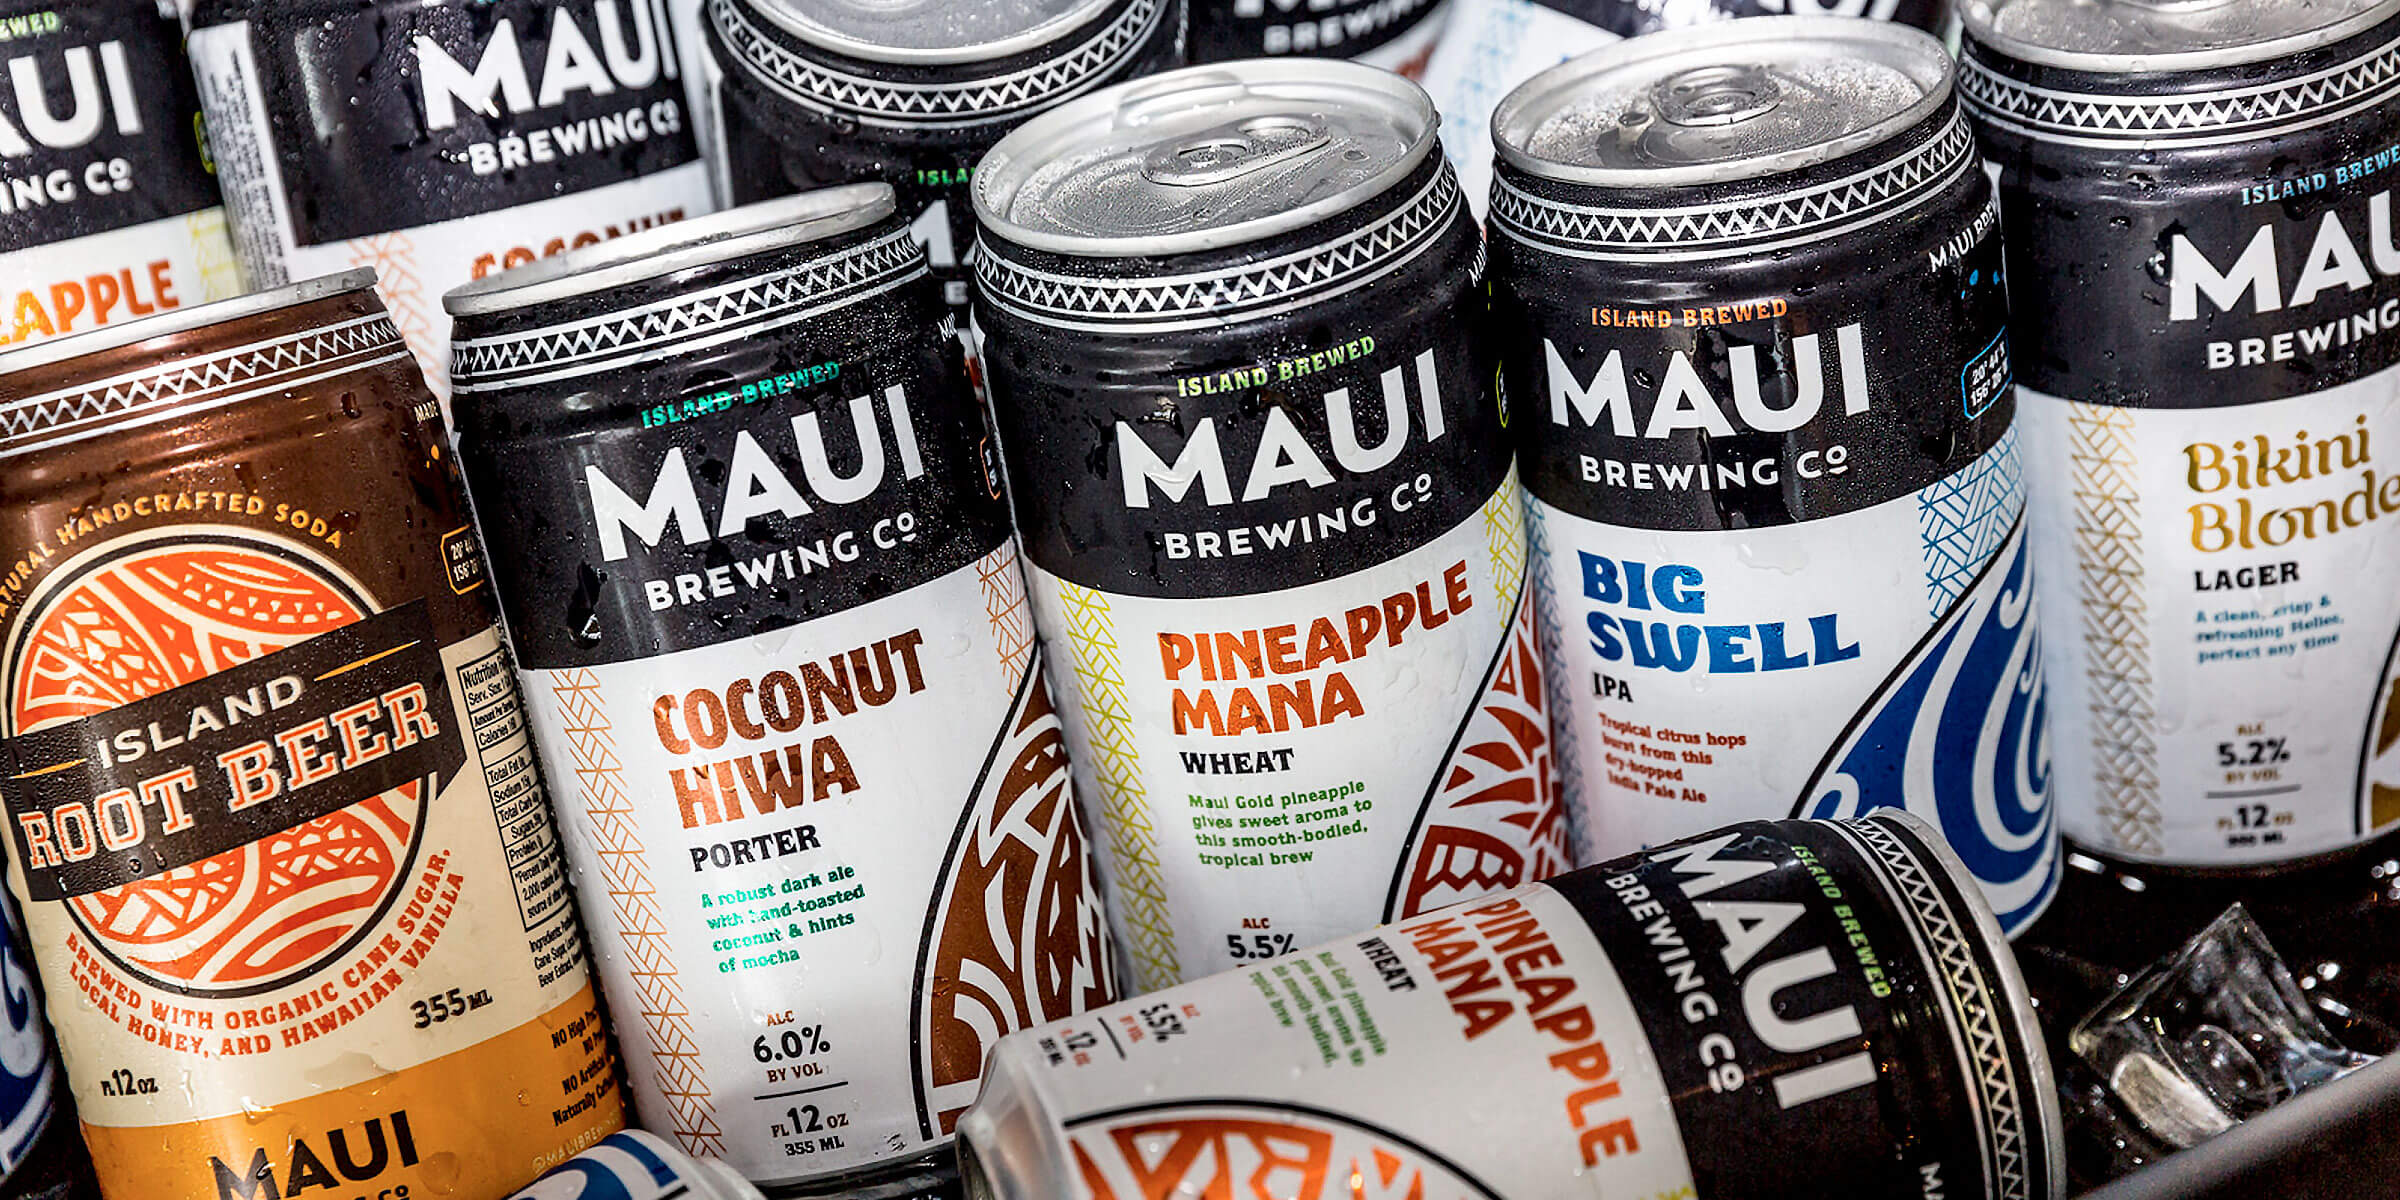 A collection of canned beers and beverages by Maui Brewing Company